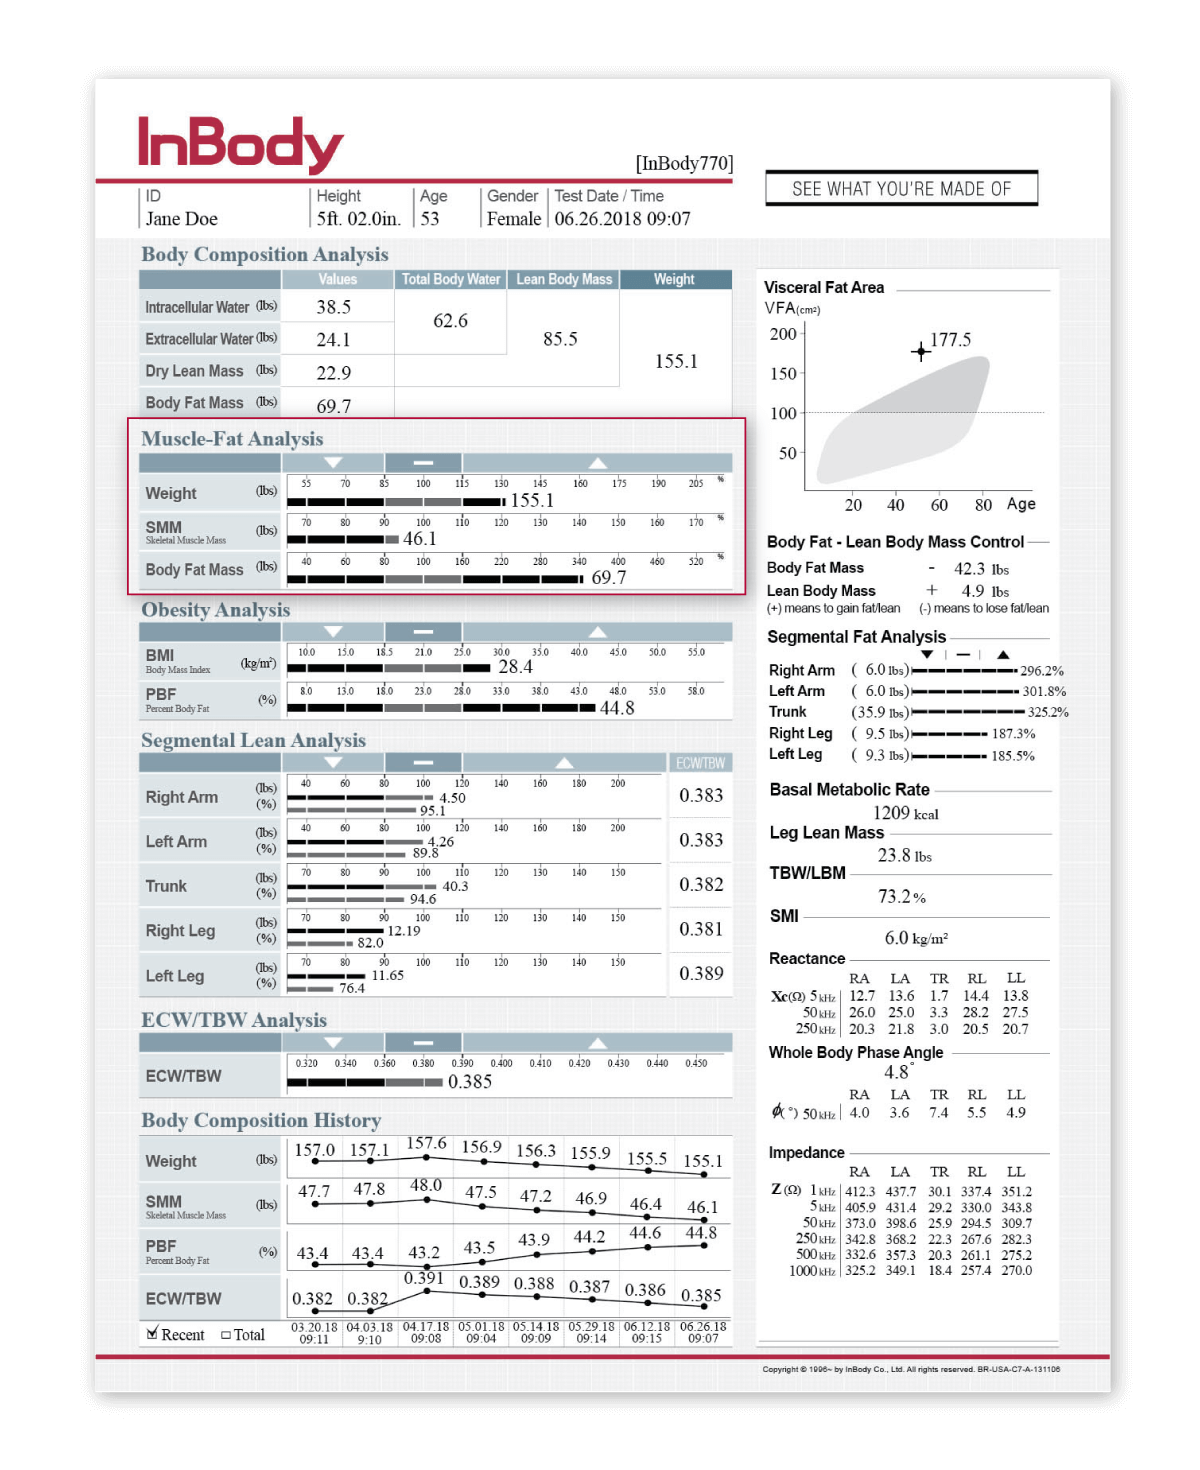 InBody 770 Result Sheet for rehabilitation industry with Muscle-Fat Analysis highlited